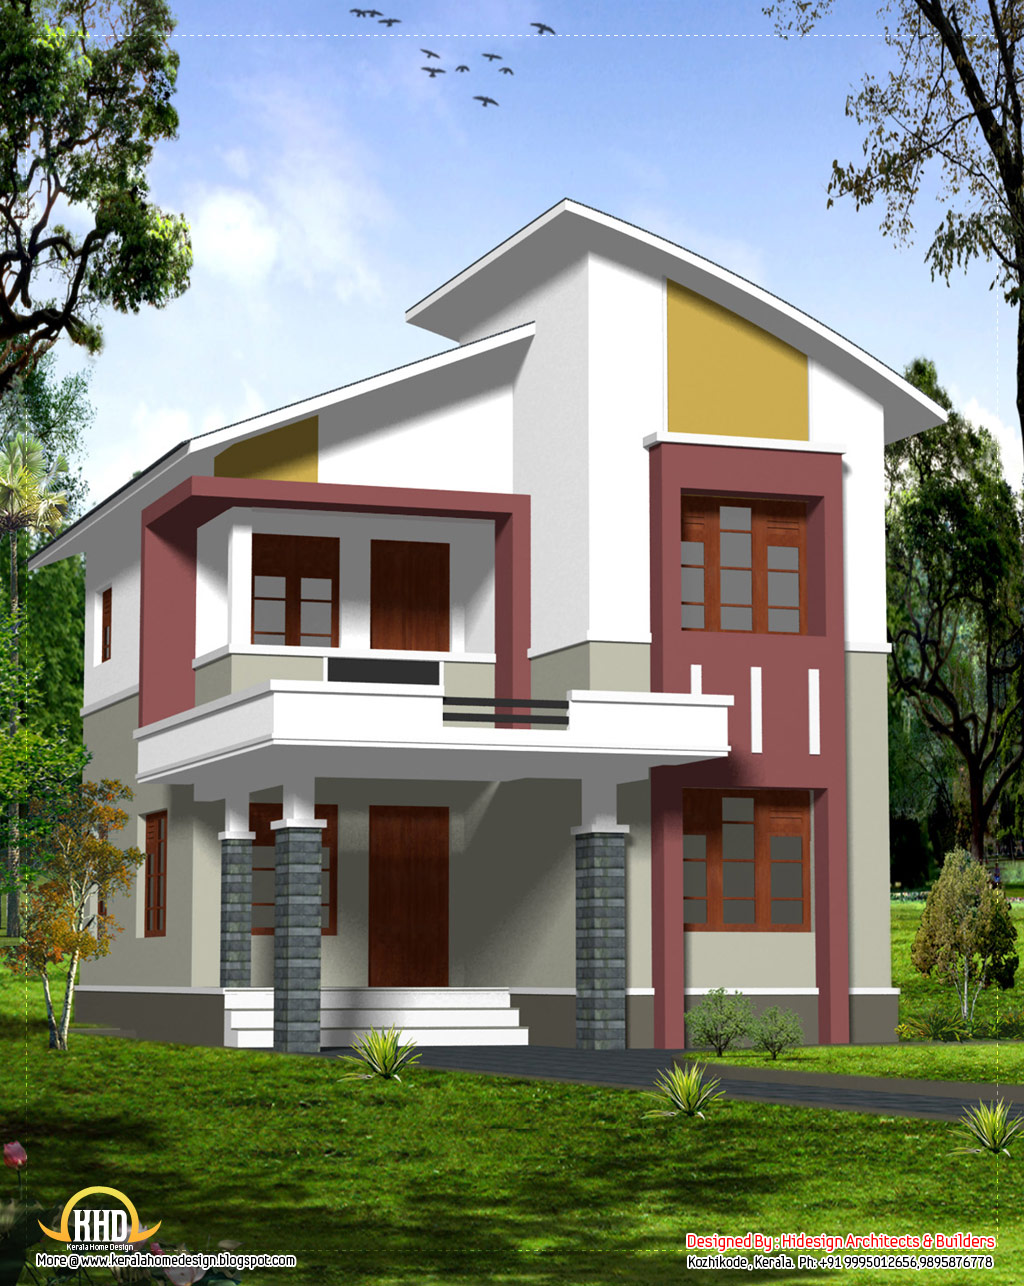 Budget Home Design 2140 Sq Ft Kerala Home Design And